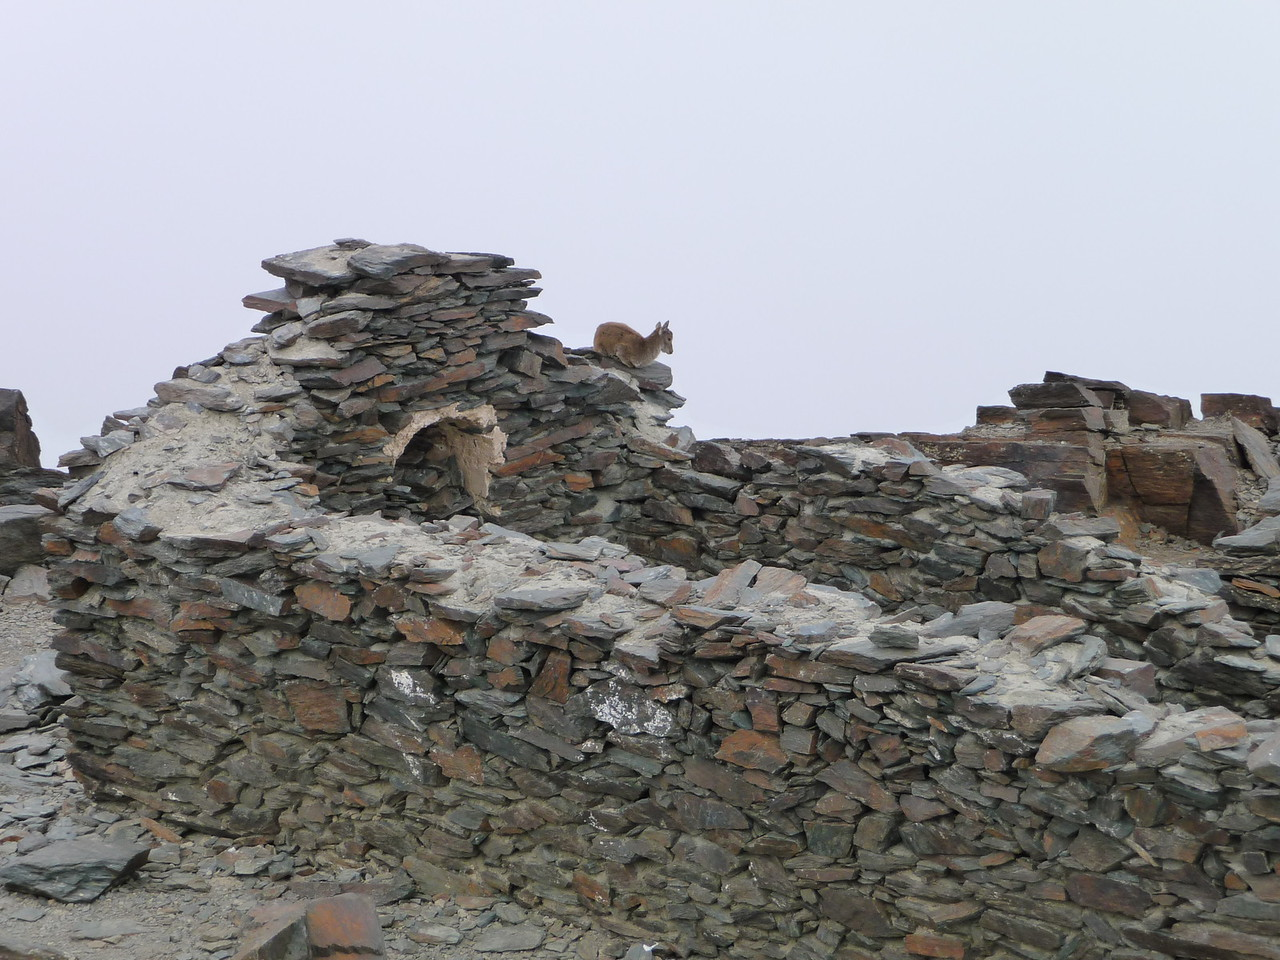 Pico Mulhacen Summit shelter with one permanent resident